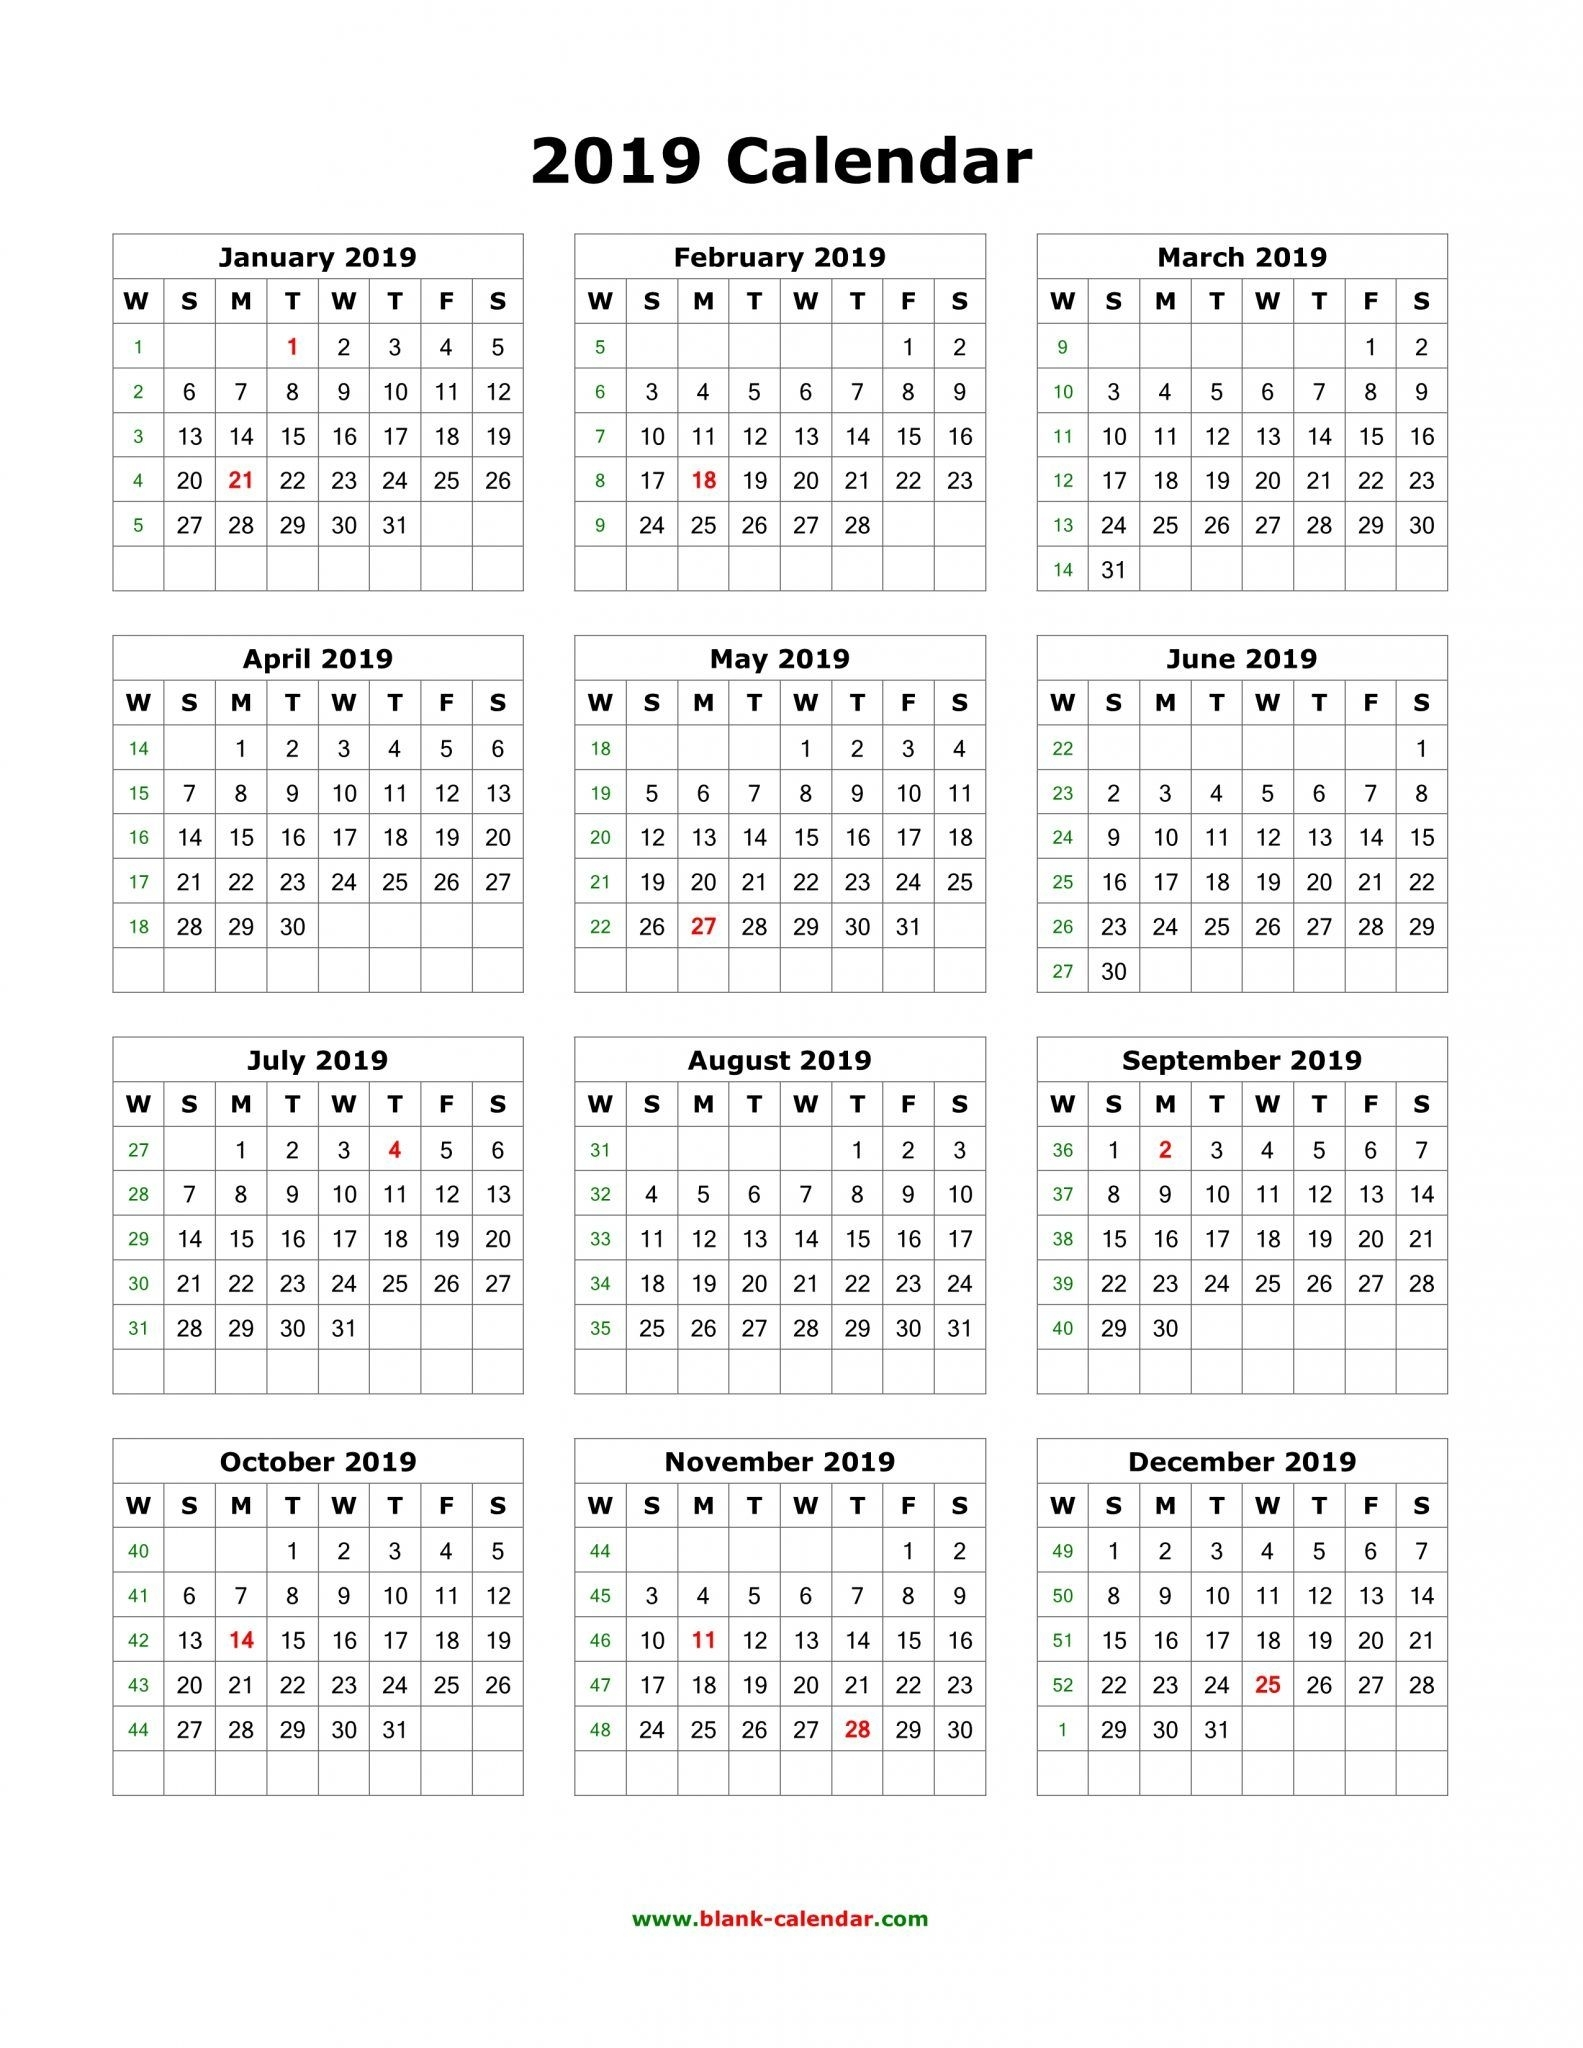 Download Blank 2019 Calendar Templates | 12 Month Calendar In One inside Blank 12 Month Calendar Printable